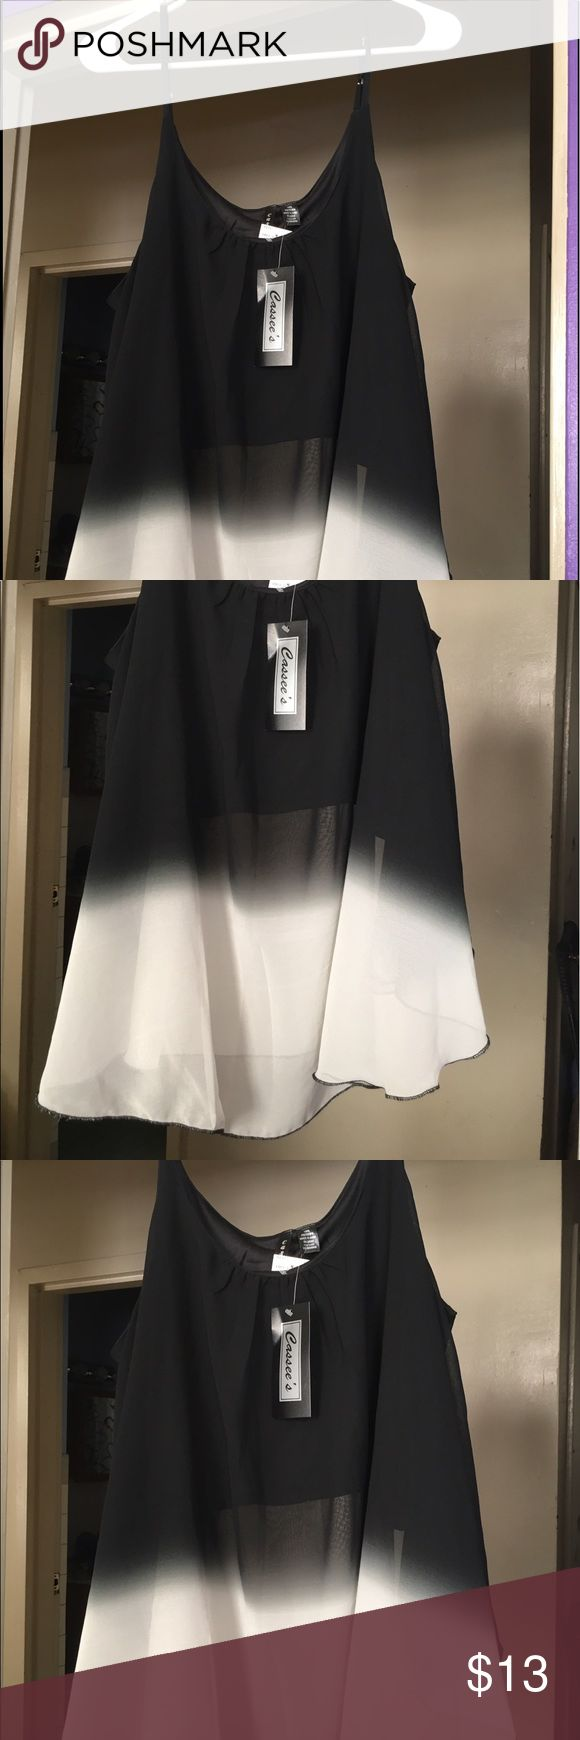 Sheer Black and White Ombré Top Brand New Sheer Black and White Ombré Top in size XL. 100% Polyester. Beautiful Spaghetti Strap Top. Perfect with a pair white tight jeans or jeggings and a nice wedge shoe. Tops Blouses